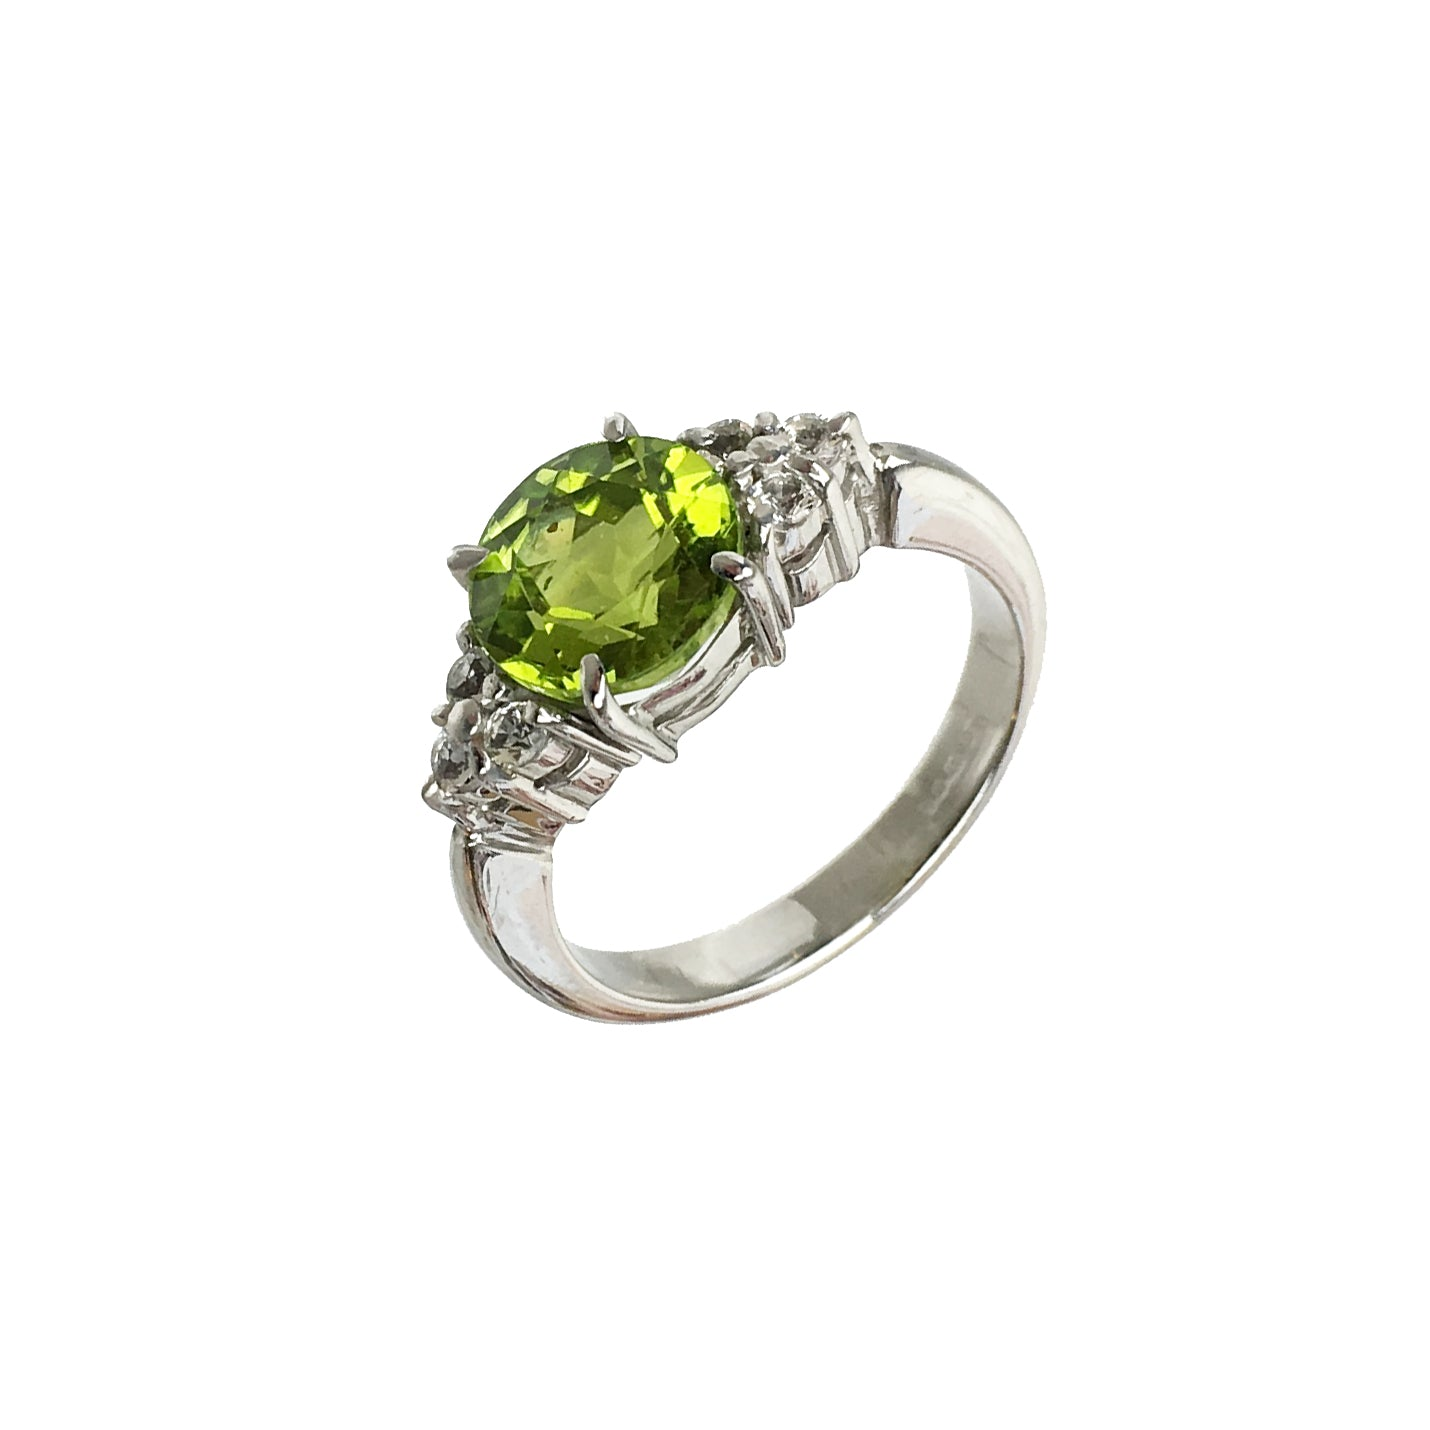 rings style vintage ring black wedding gold peridot inspirational engagement of